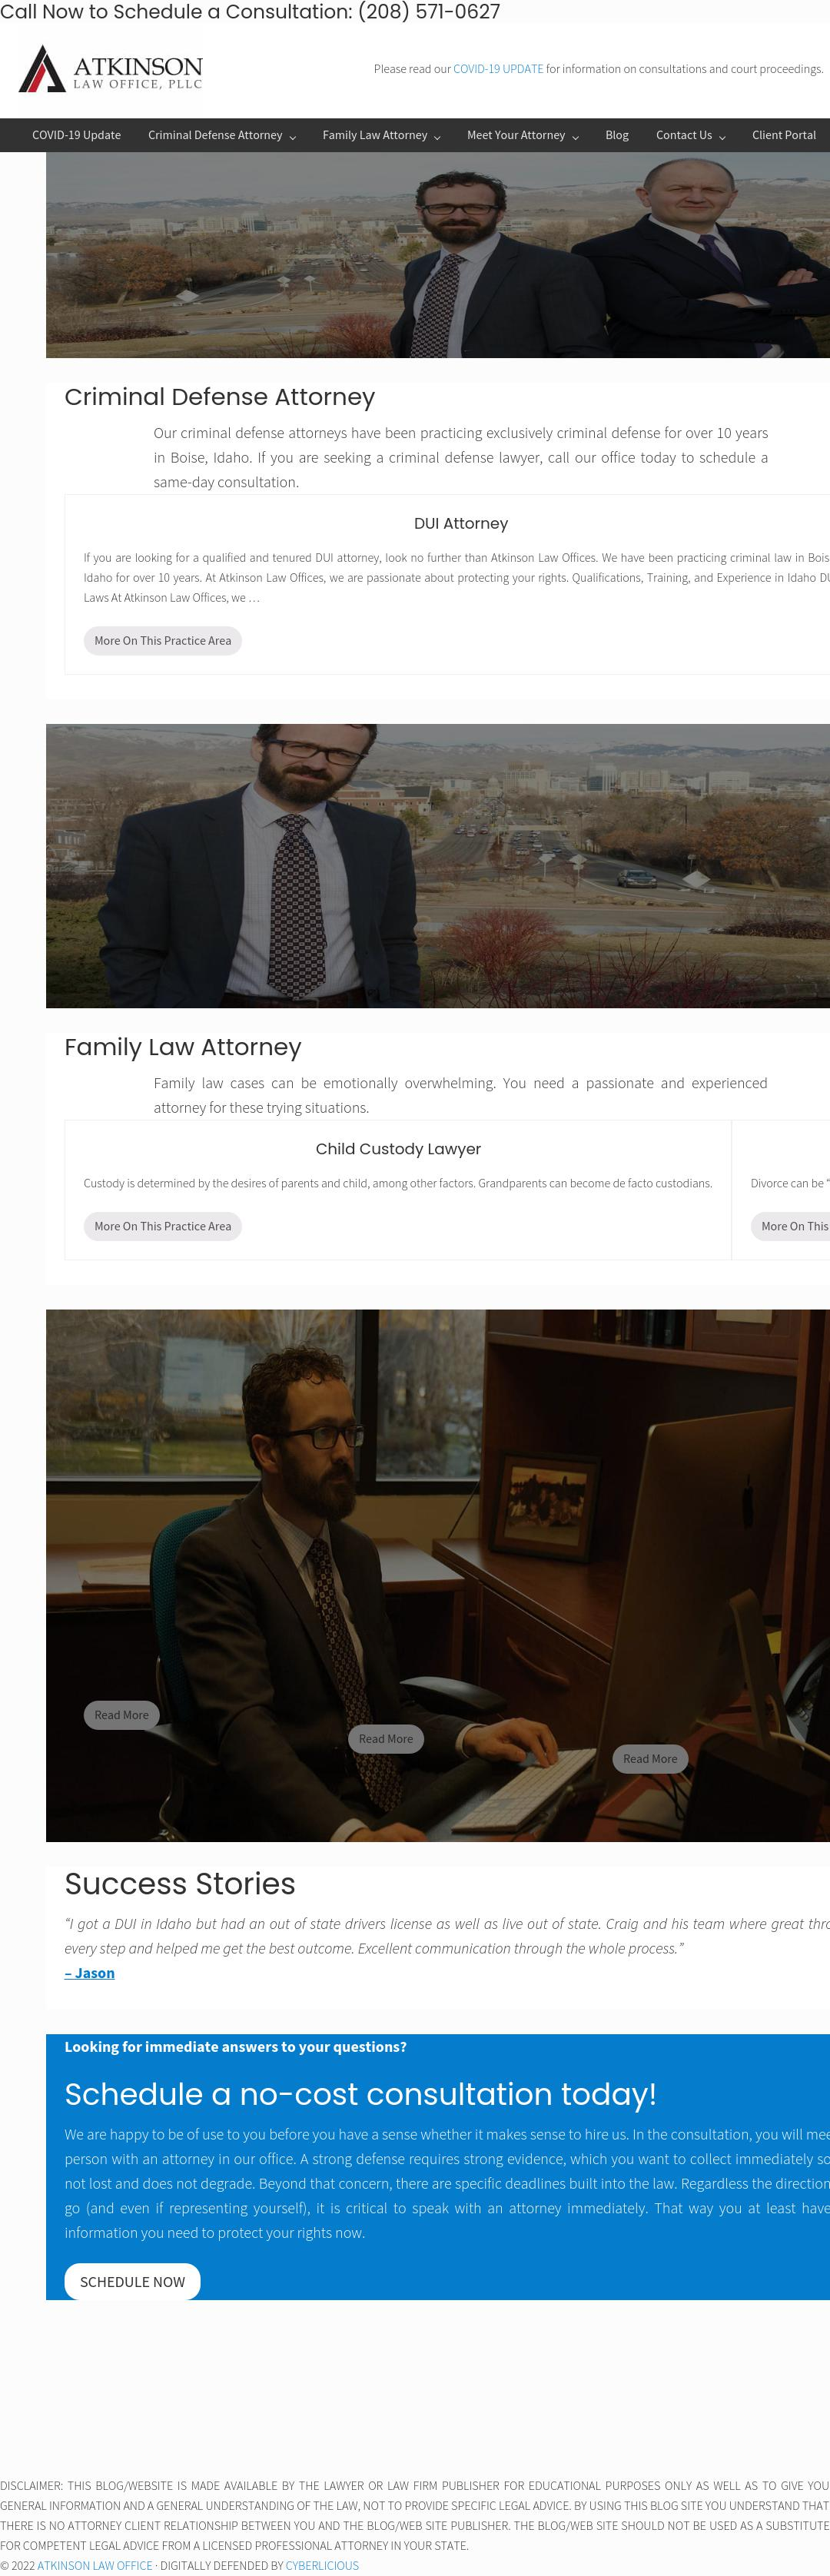 Atkinson Law Office, PLLC - Boise ID Lawyers